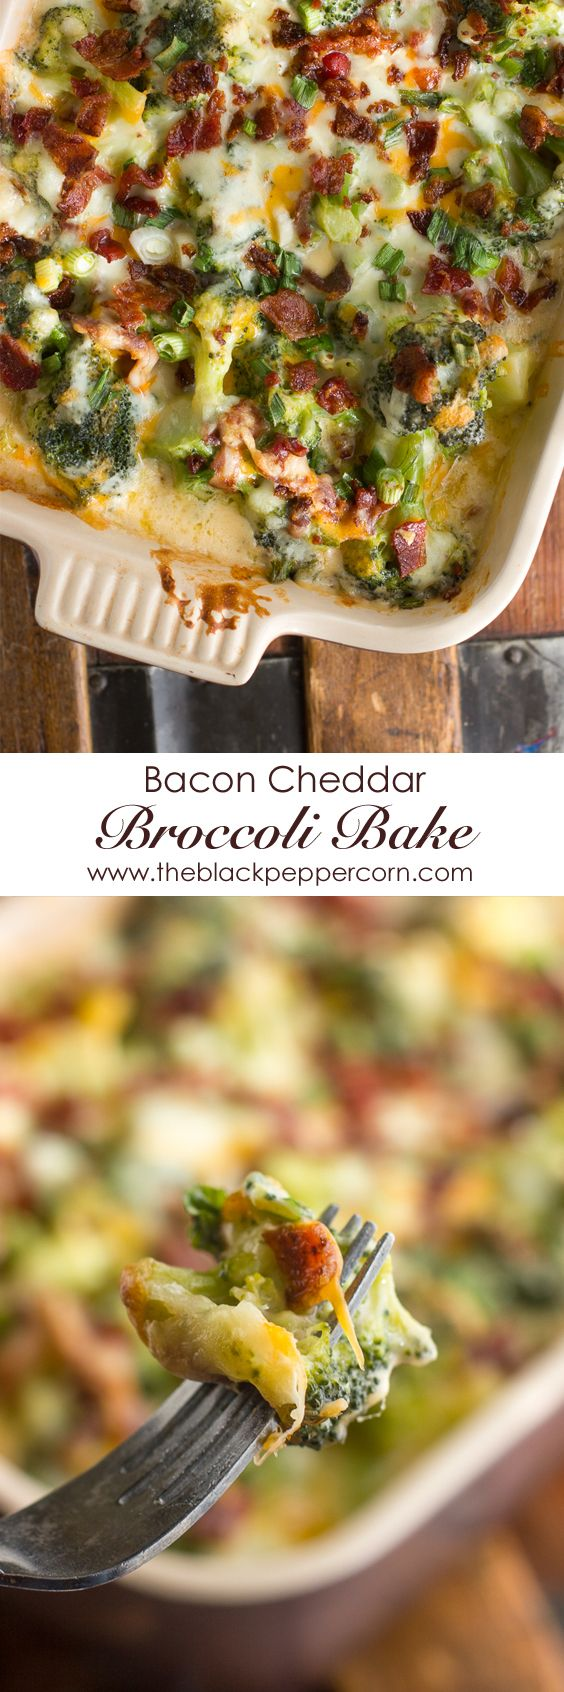 Bacon Cheddar Broccoli Bake - added 3 cloves garlic and ritz crackers. Sauce was thick. Try adding more milk?